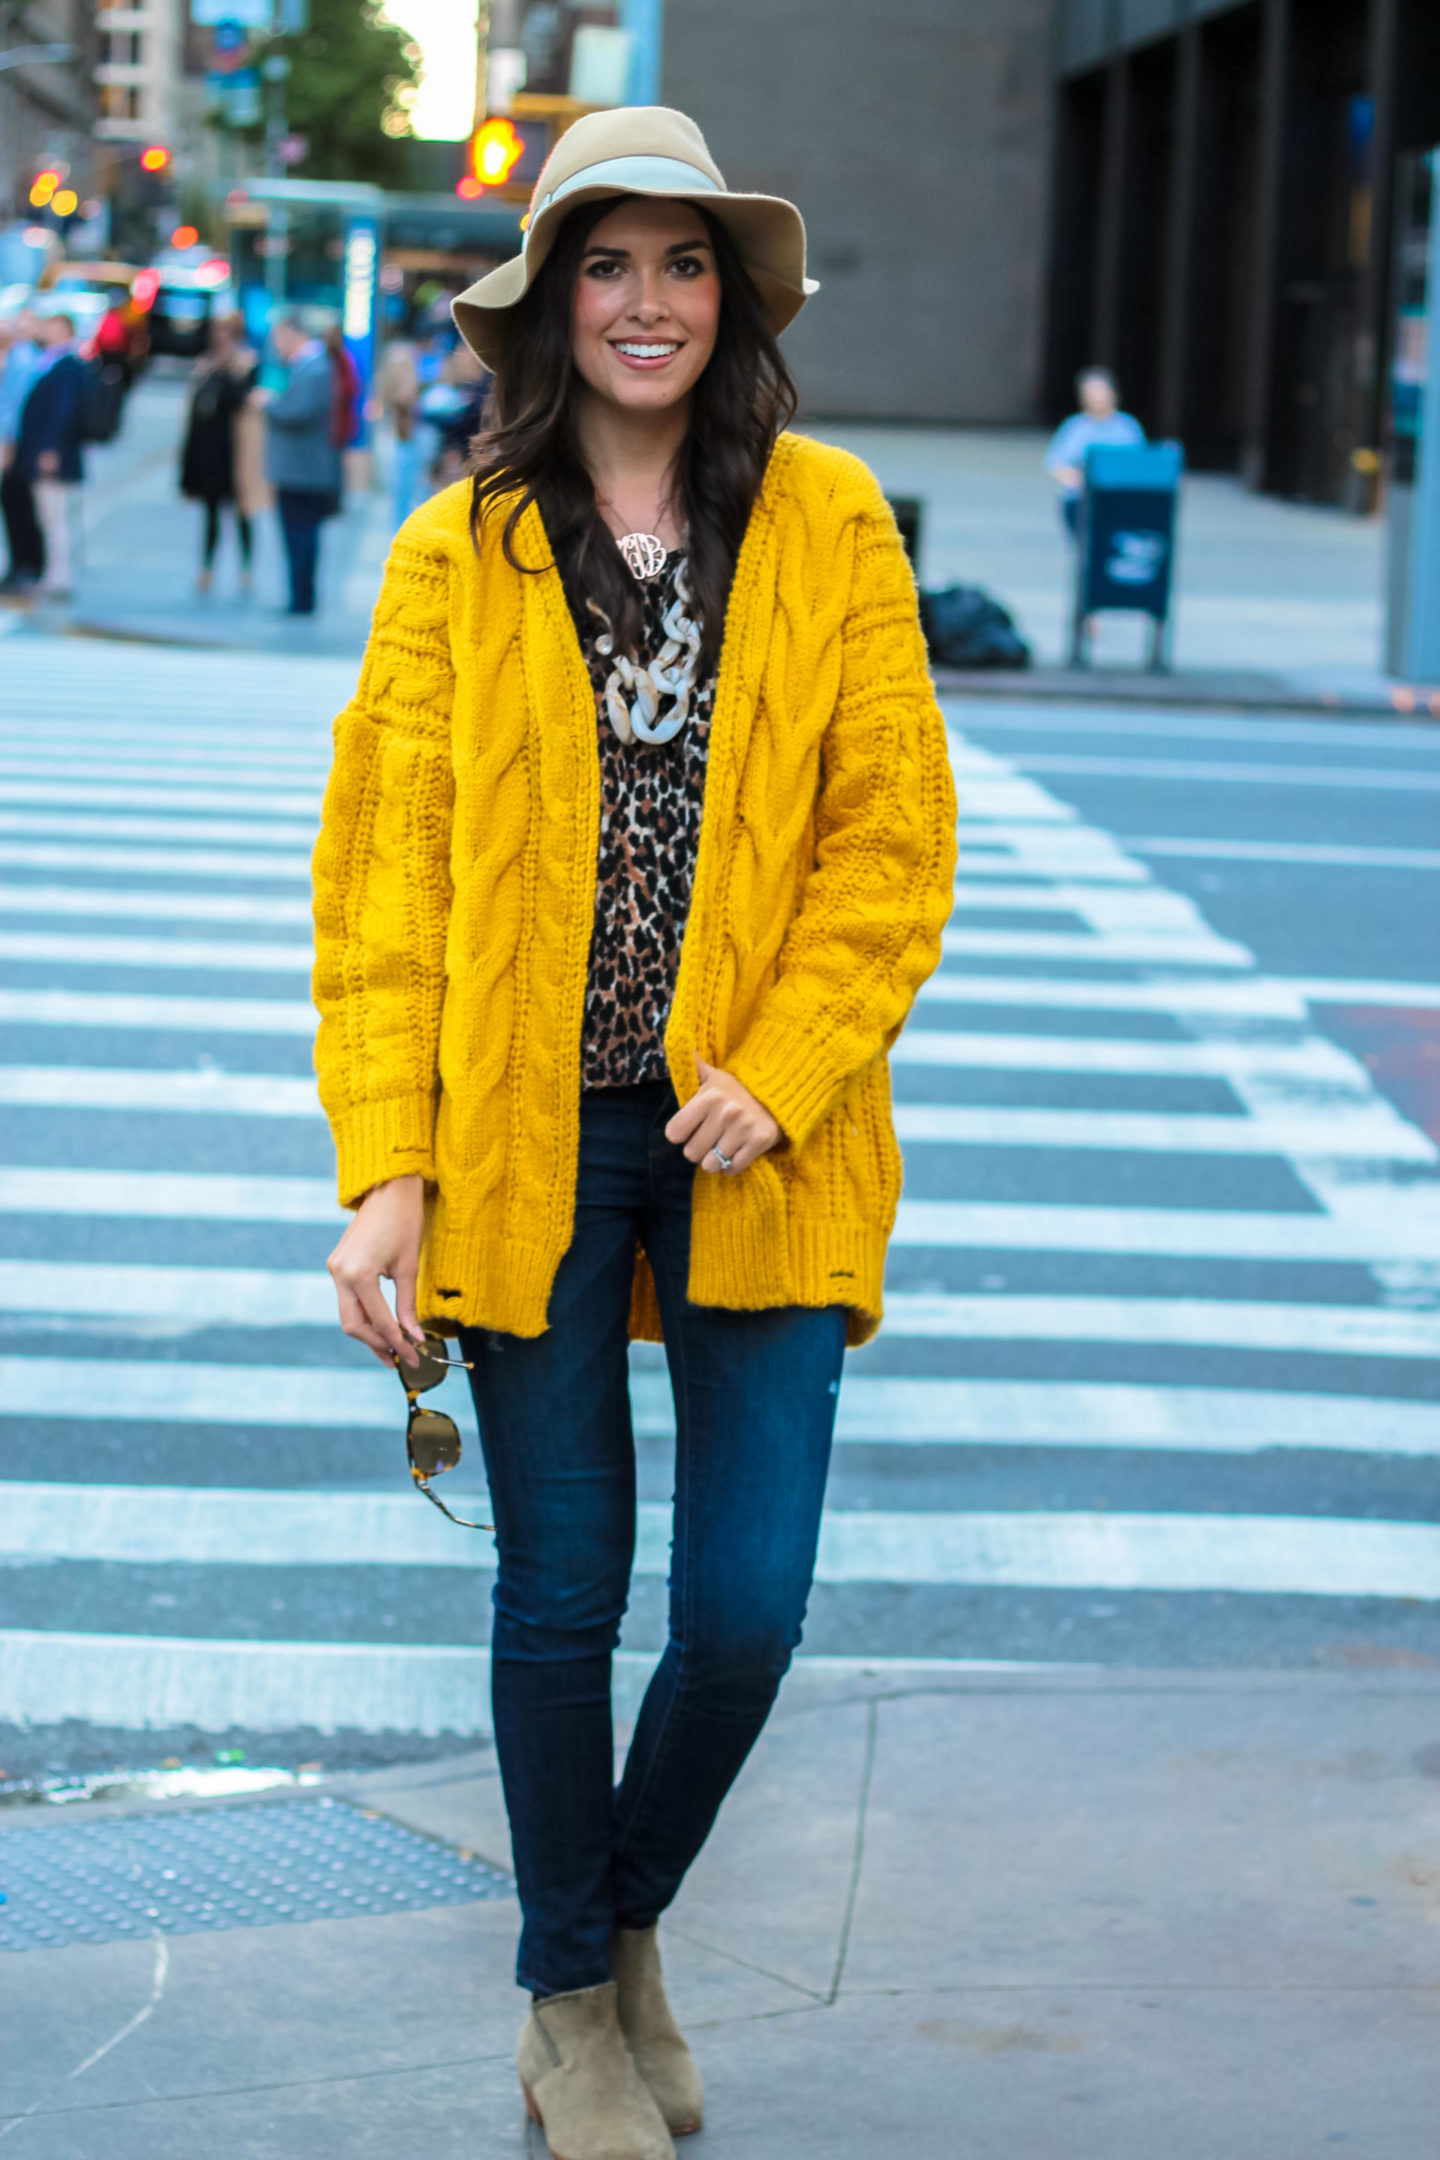 Shop Thanksgiving Day Outfits On Amazon by New York fashion blogger Style Waltz